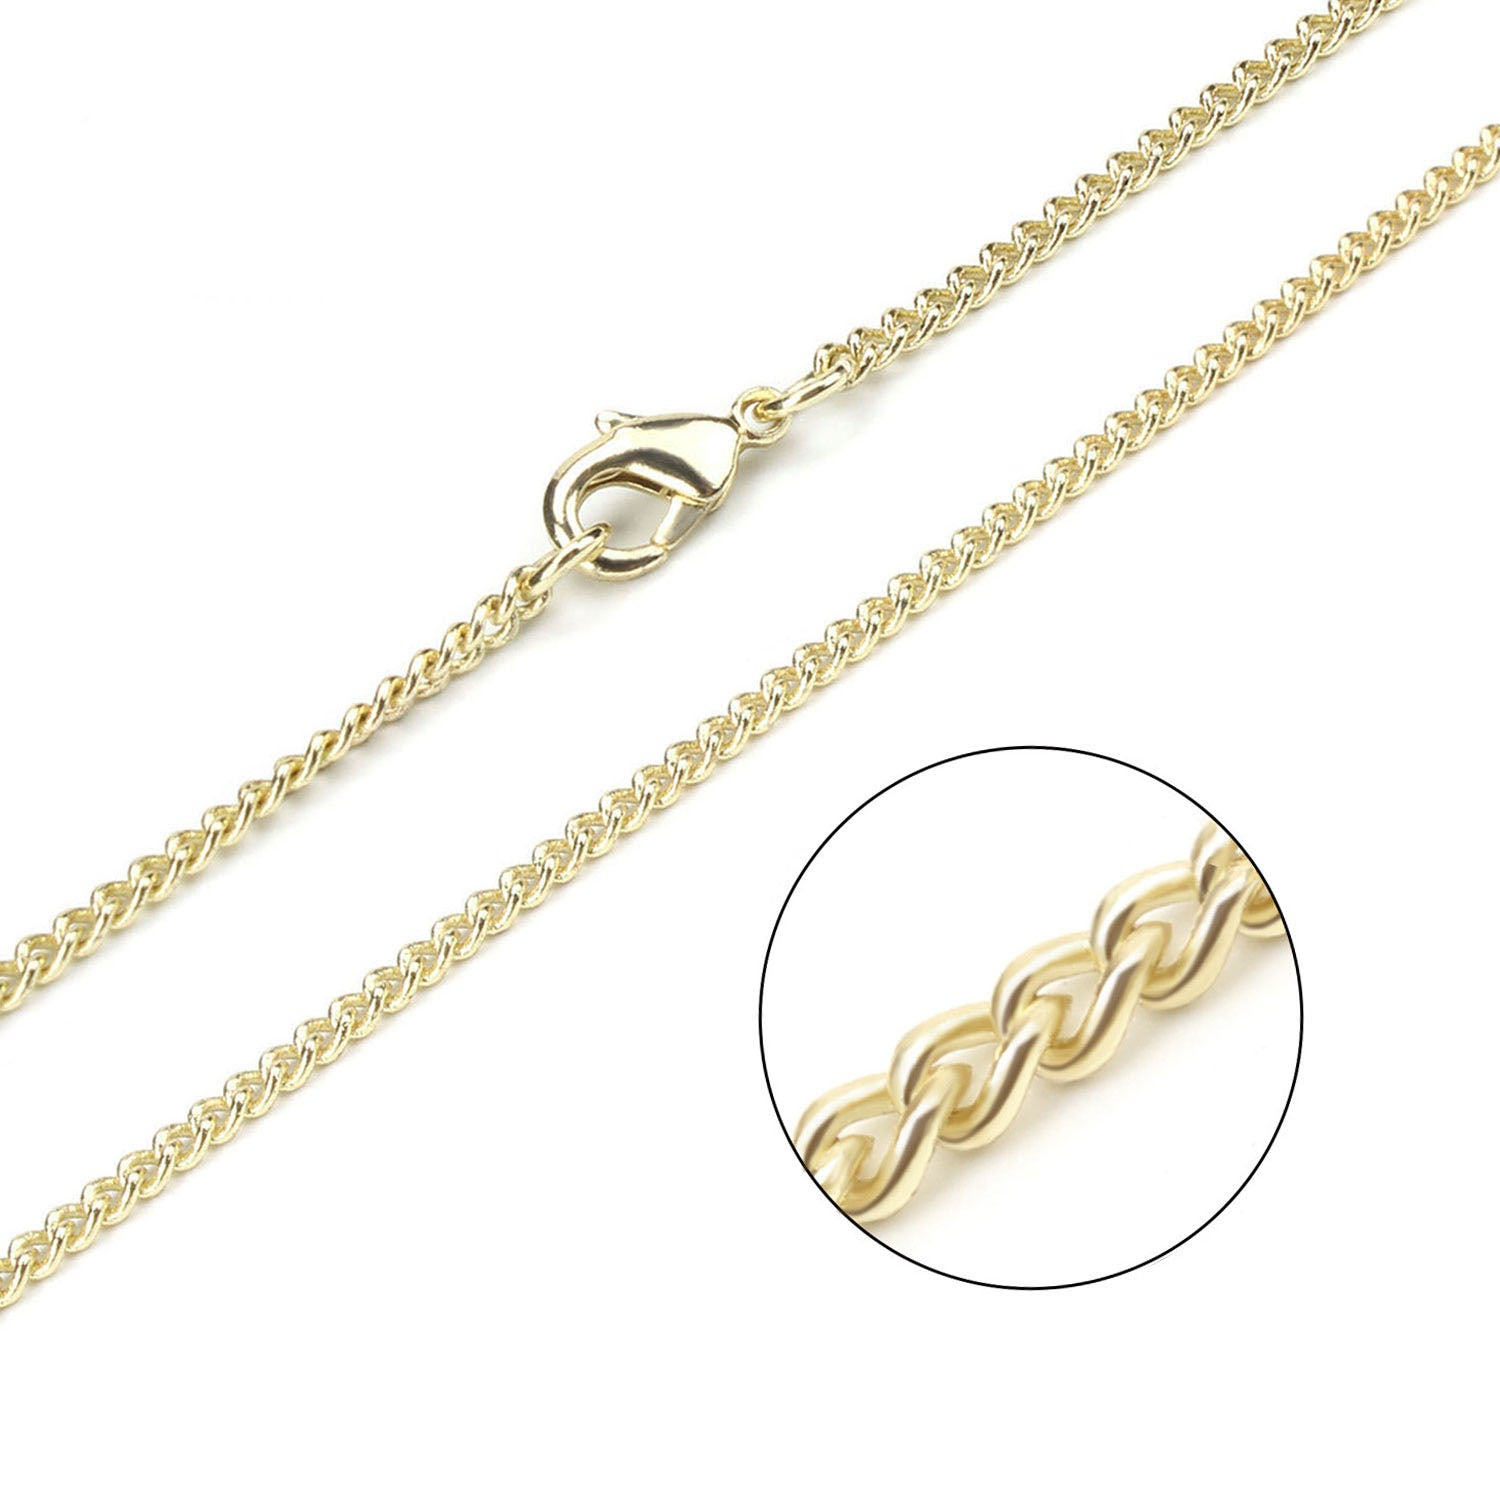 12PCS Gold Plated Solid Brass 2mm Curb Chain 18-26 Inches